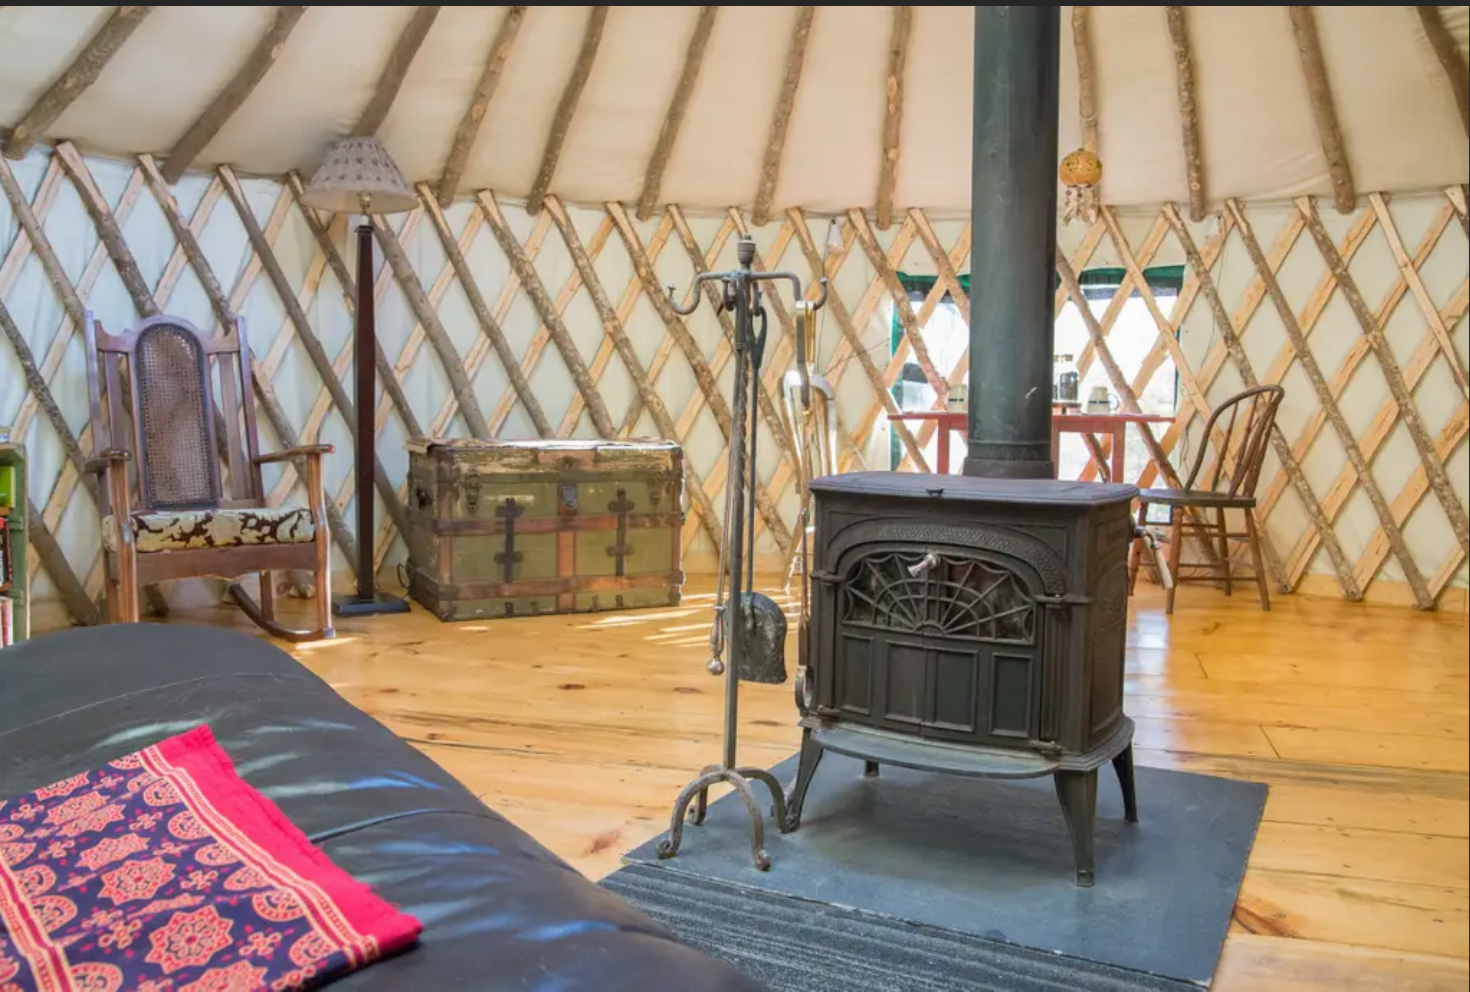 Stay In These 8 Incredible Yurts In New Hampshire For A Great Overnight +2 million rentals worldwide 19+ million reviews secure online payment 24/7 customer service. incredible yurts in new hampshire